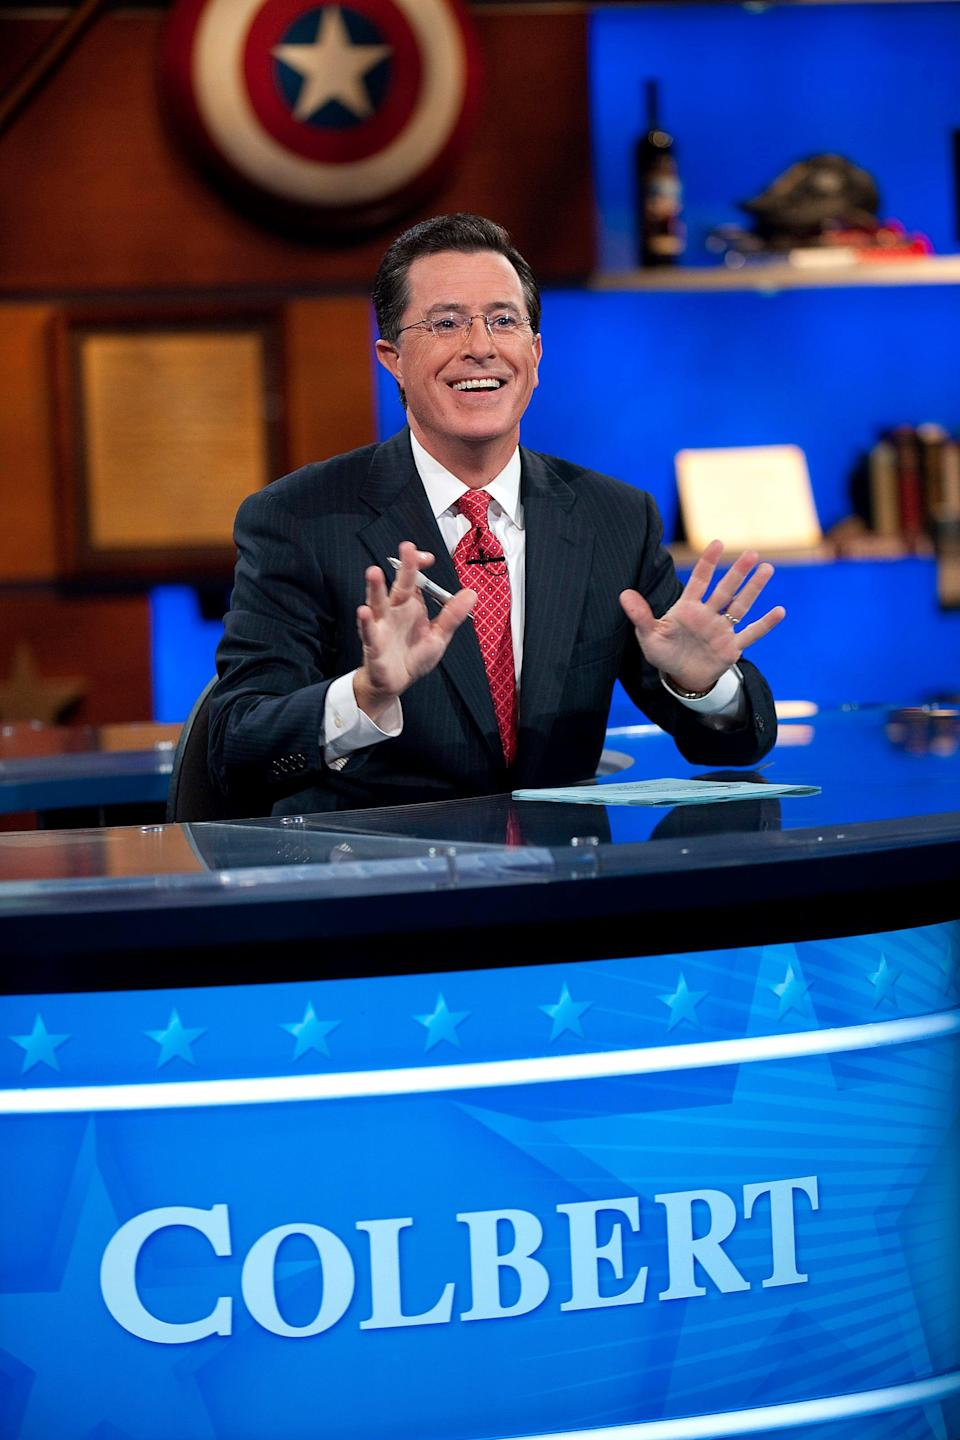 """Host Stephen Colbert appears during the """"Been There: Won That: The Returnification of the American-Do Troopscapeon"""" special of The Colbert Report in New York City."""